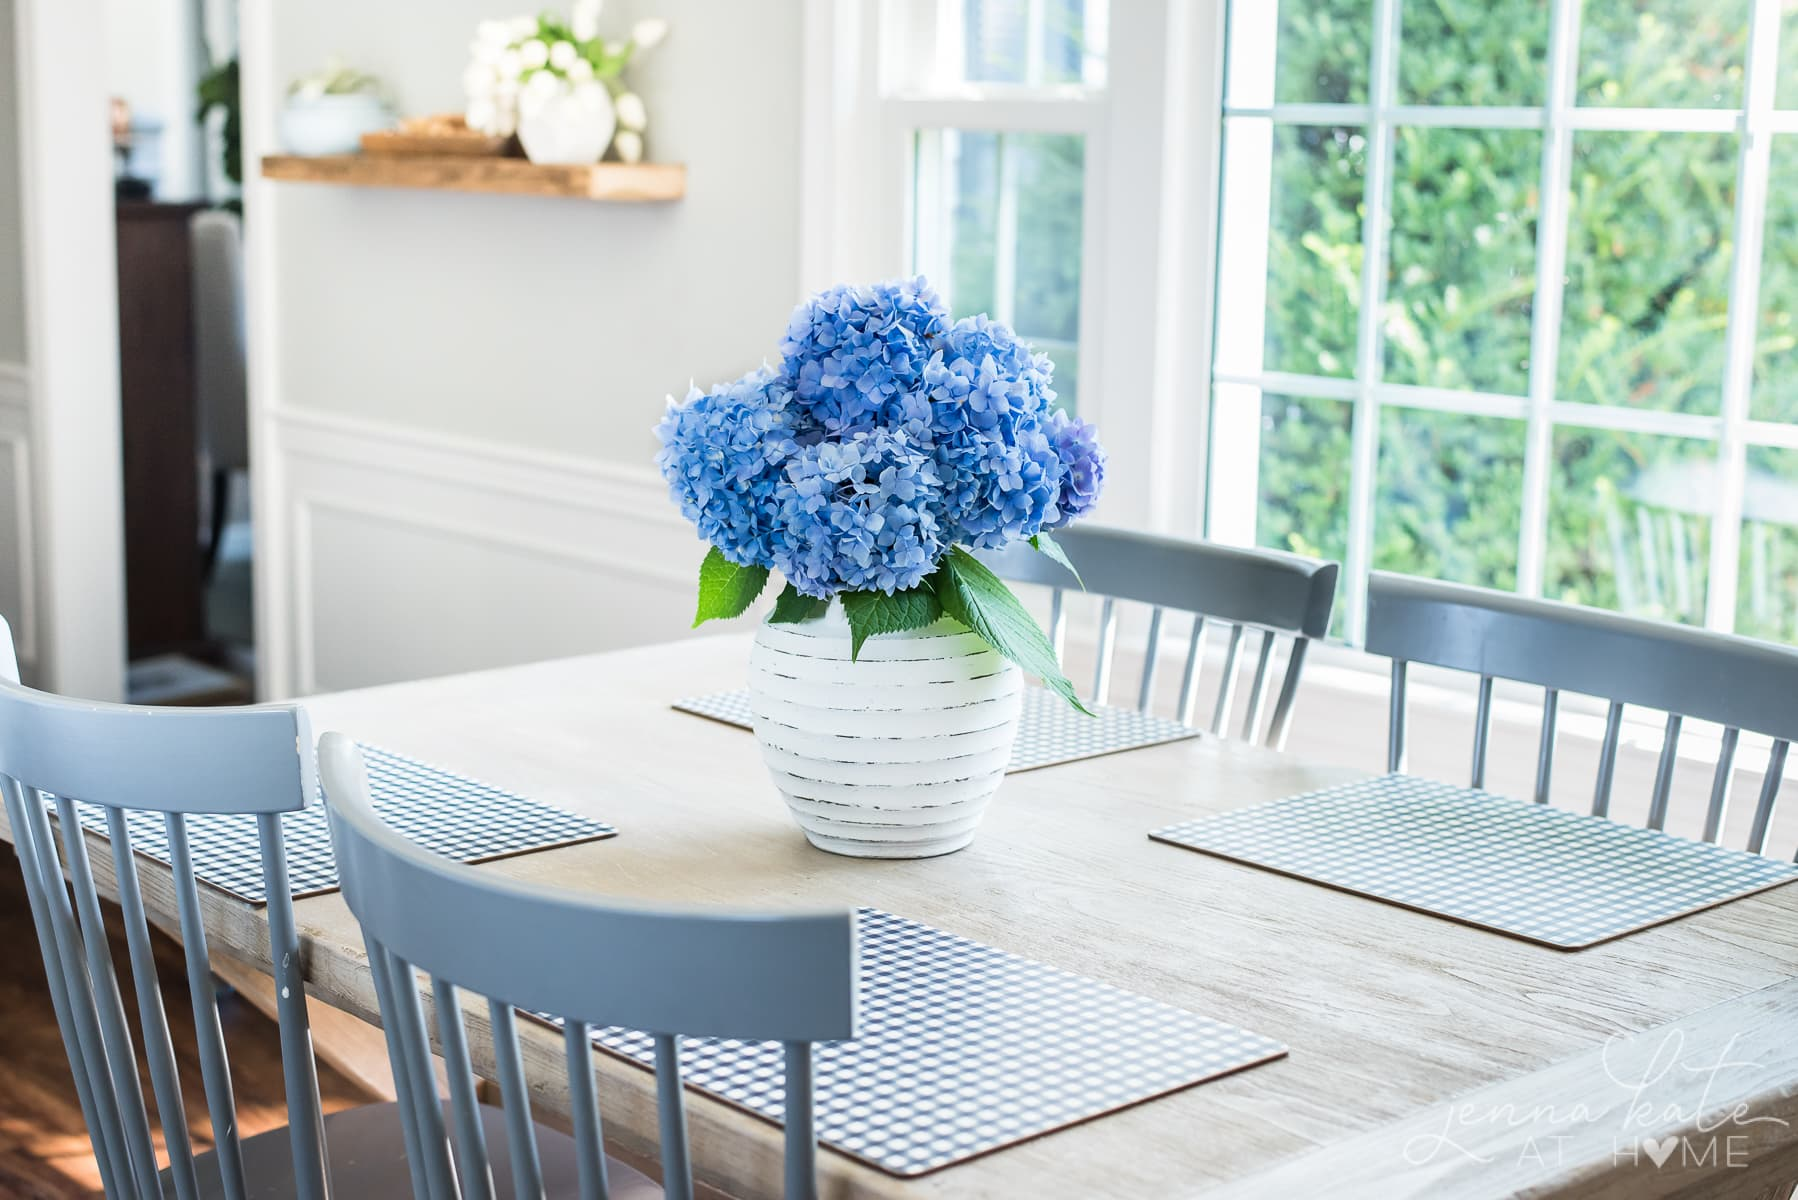 How to keep hydrangeas from wilting and drooping